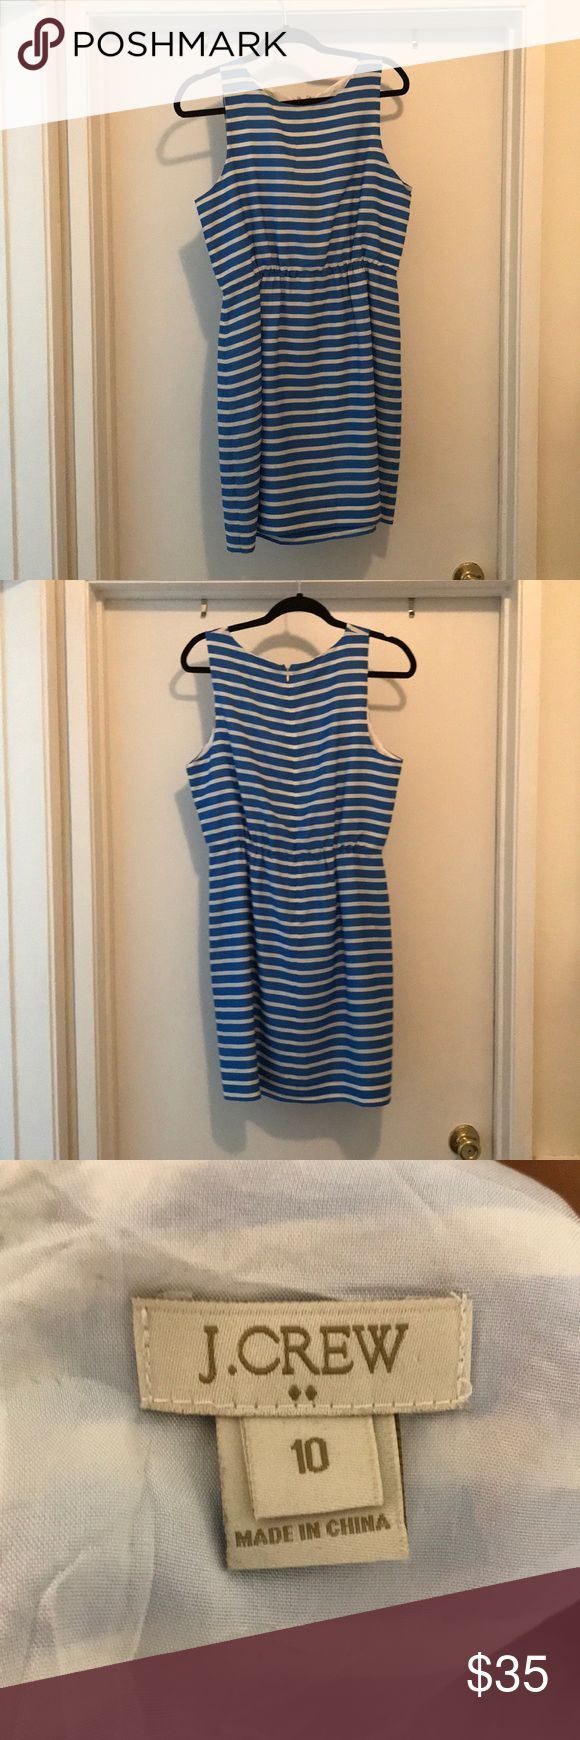 Blue and white striped J. Crew dress Size 10 Blue and white striped J. Crew dress Size 10. Knee length. Zipper in the back. Great spring work dress. Unfortunately, it is too small for me now. J. Crew Dresses Midi